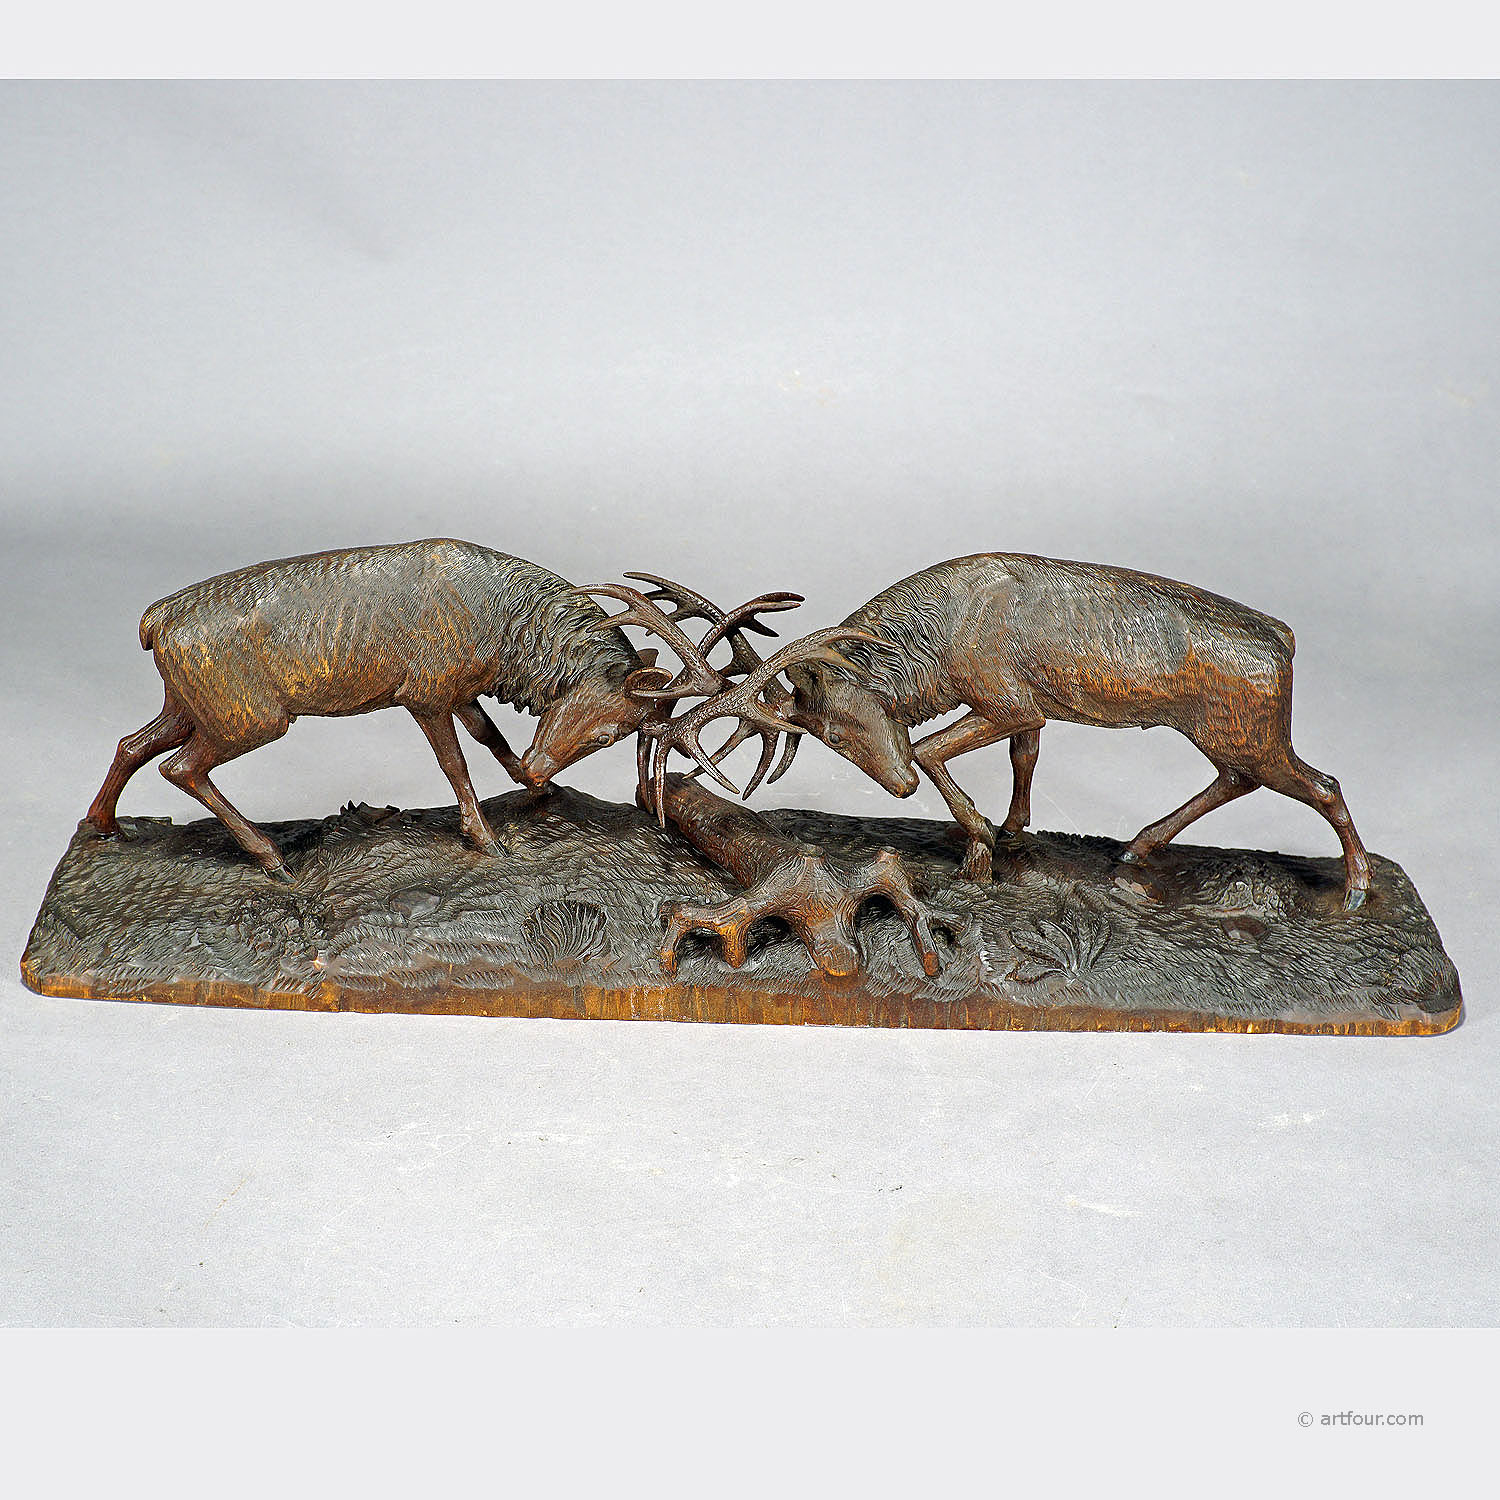 Carved wood stags by k bach for sale at artfour